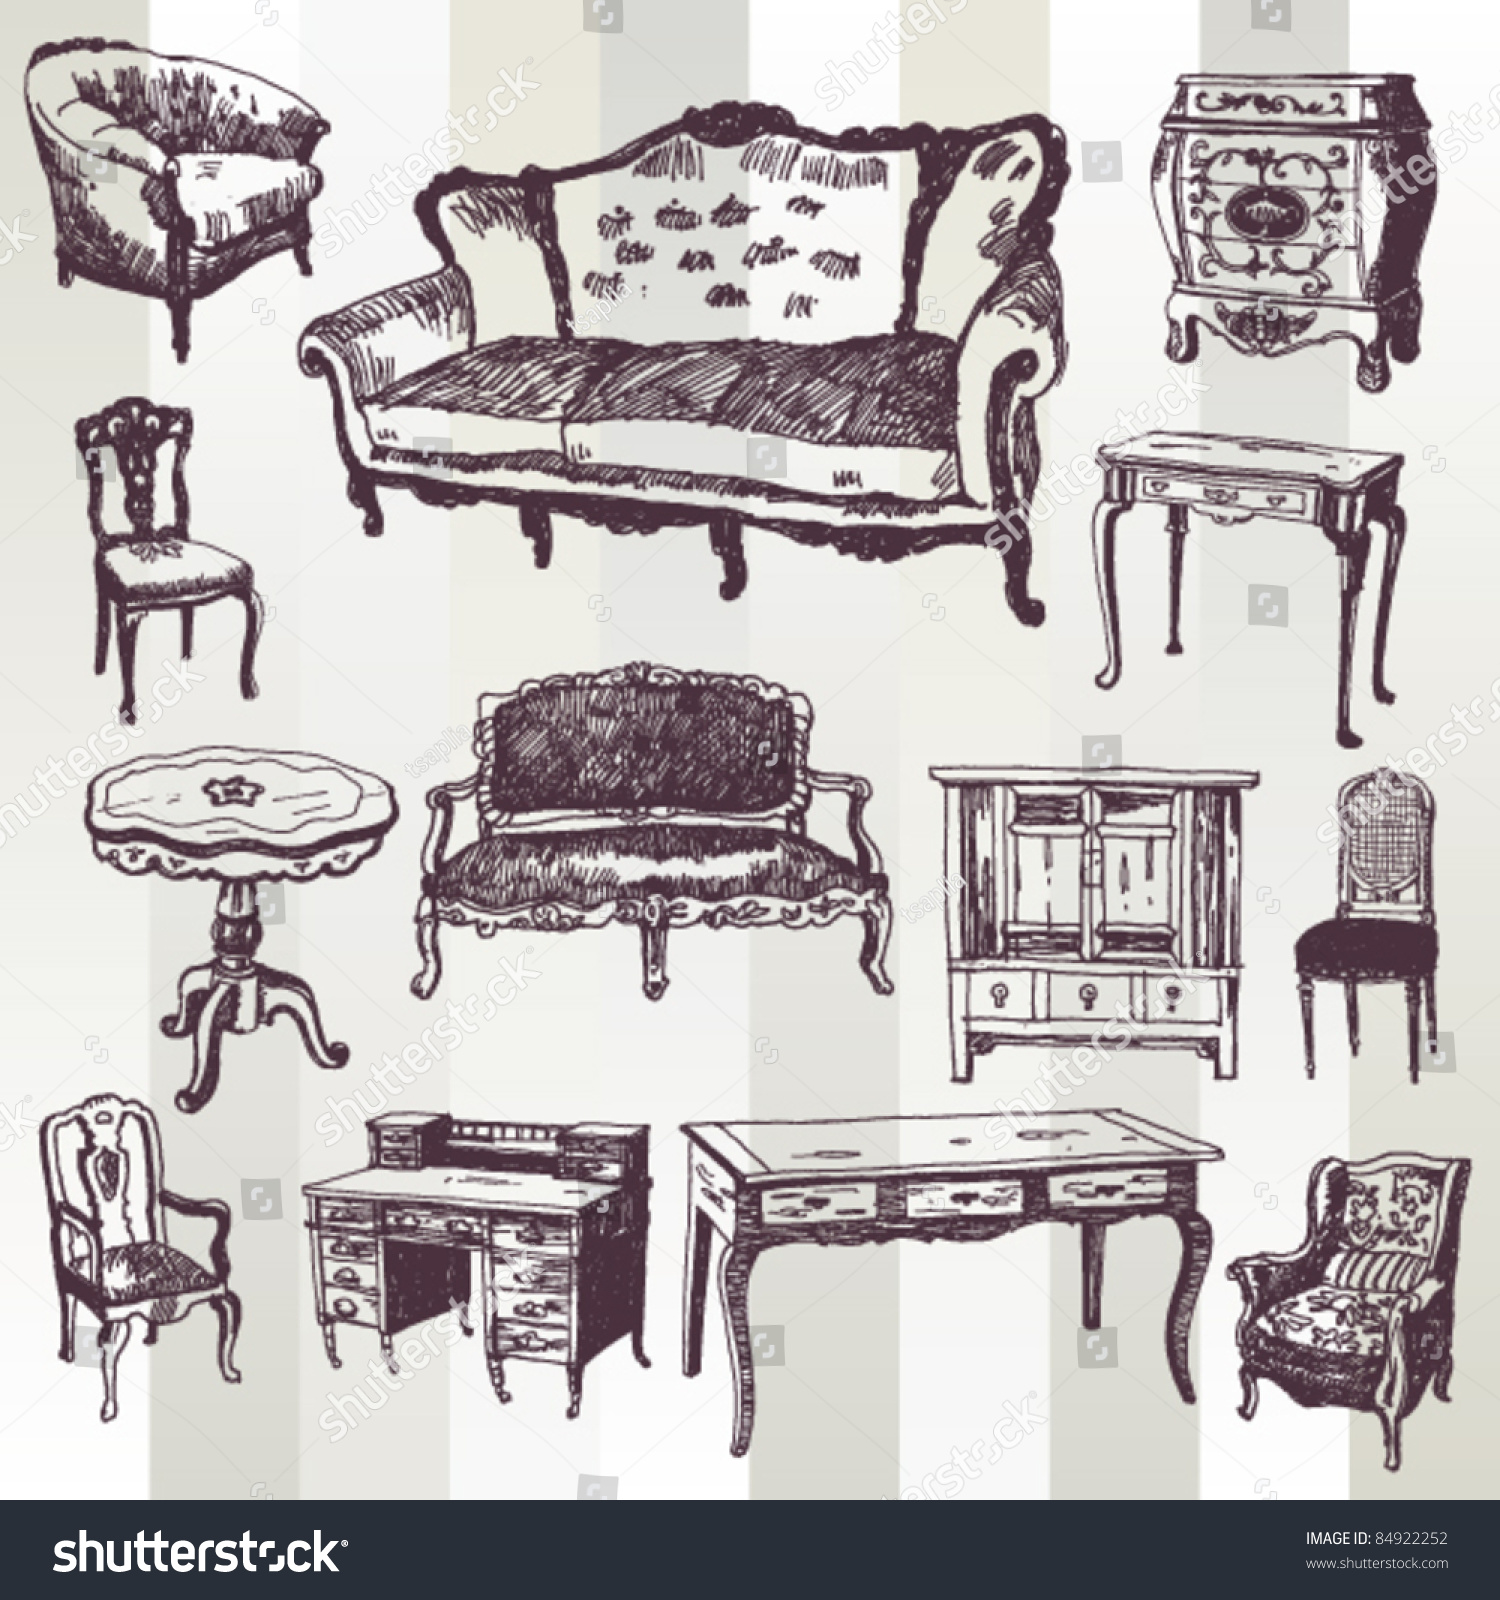 Antique chair drawing - Set Of Hand Drawn Antique Furniture